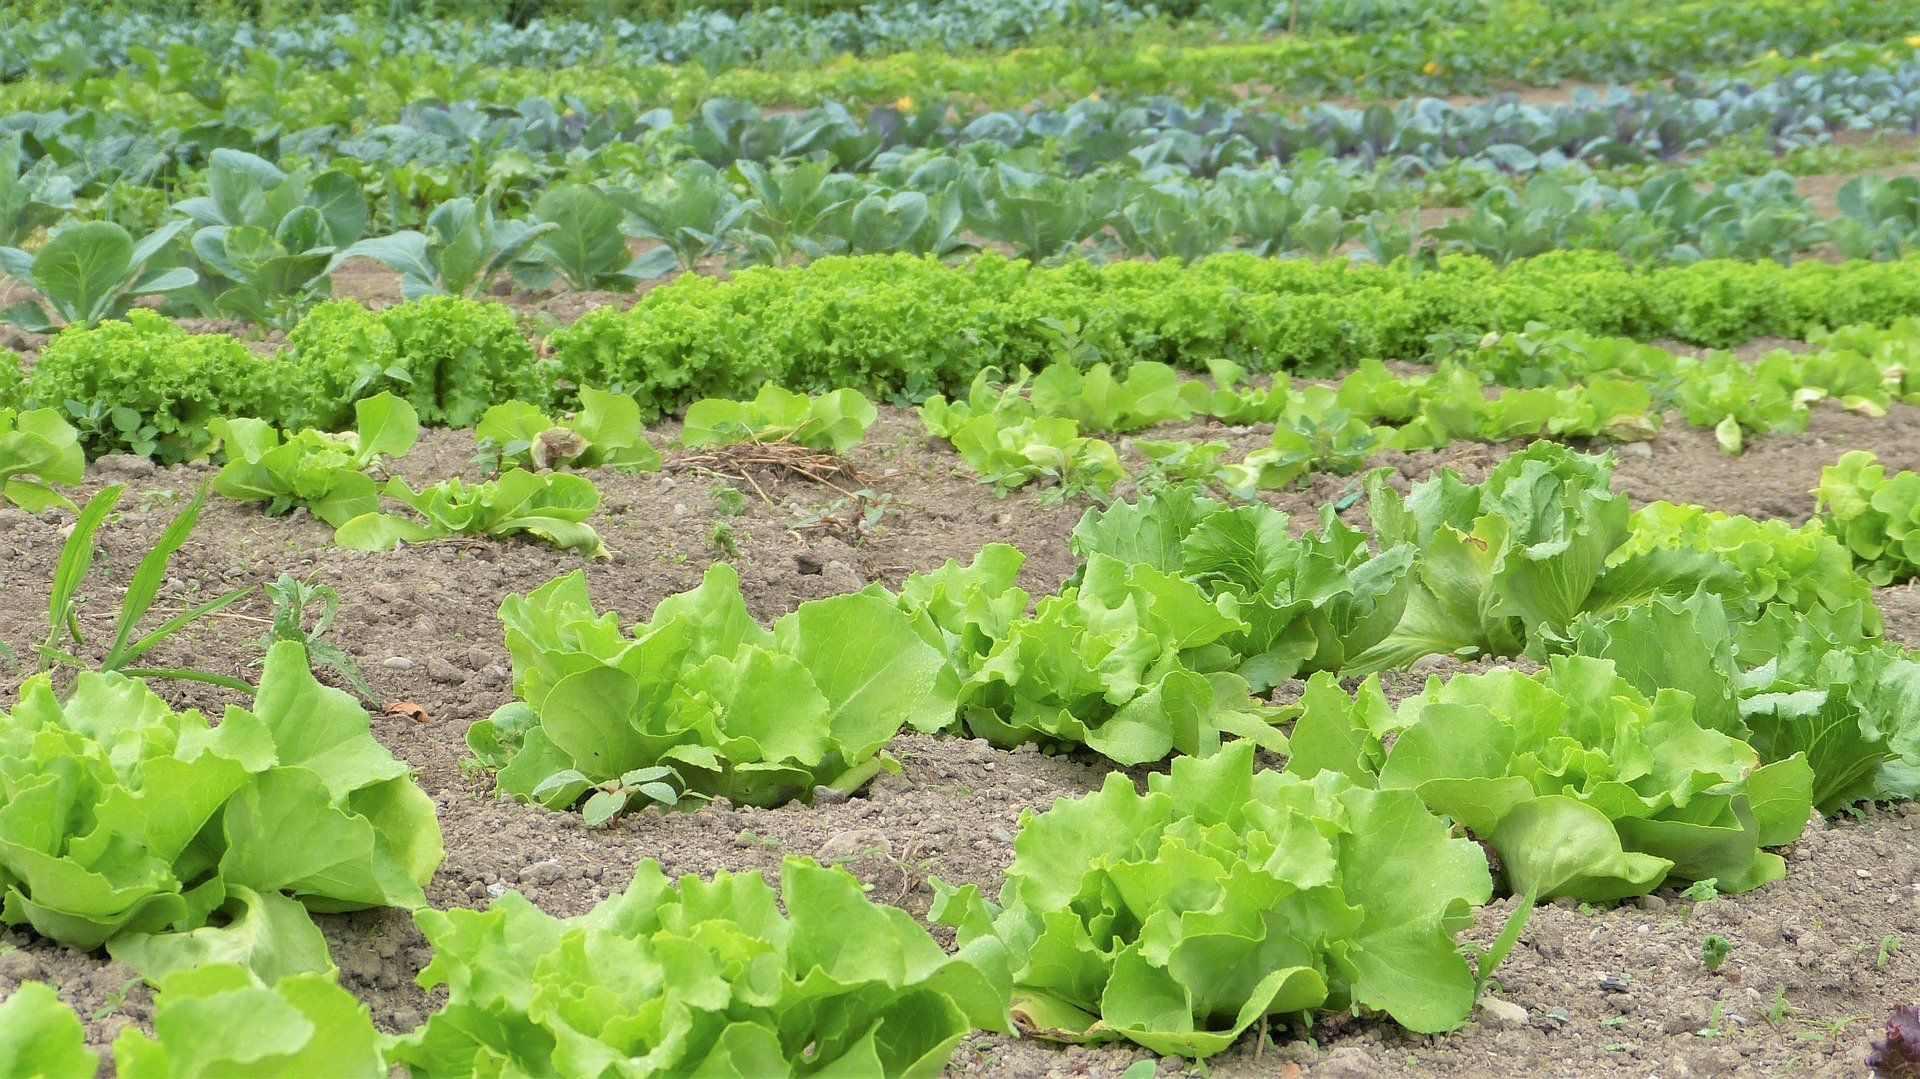 Large field with lettuce growing.